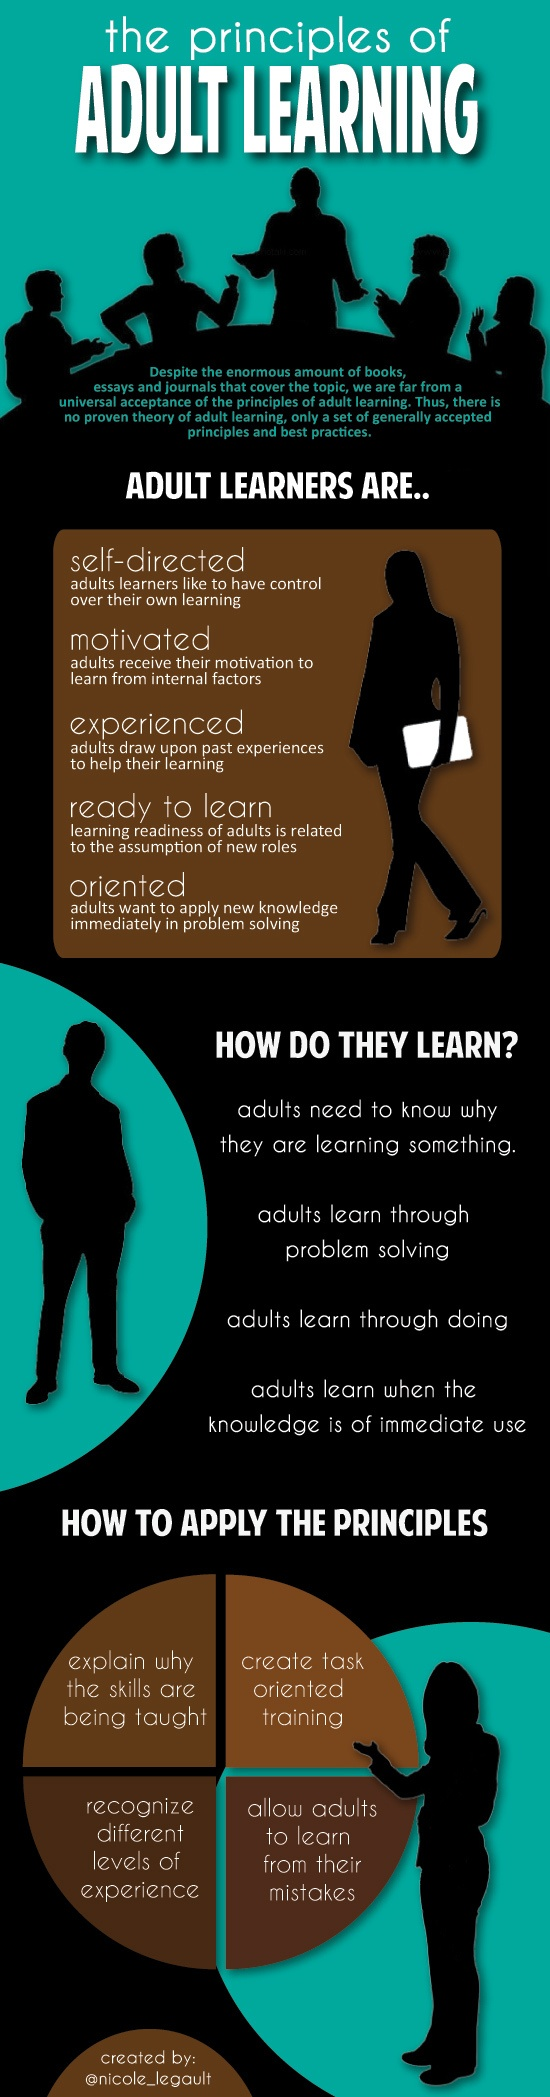 Principles-of-Adult-Learning-Infographic